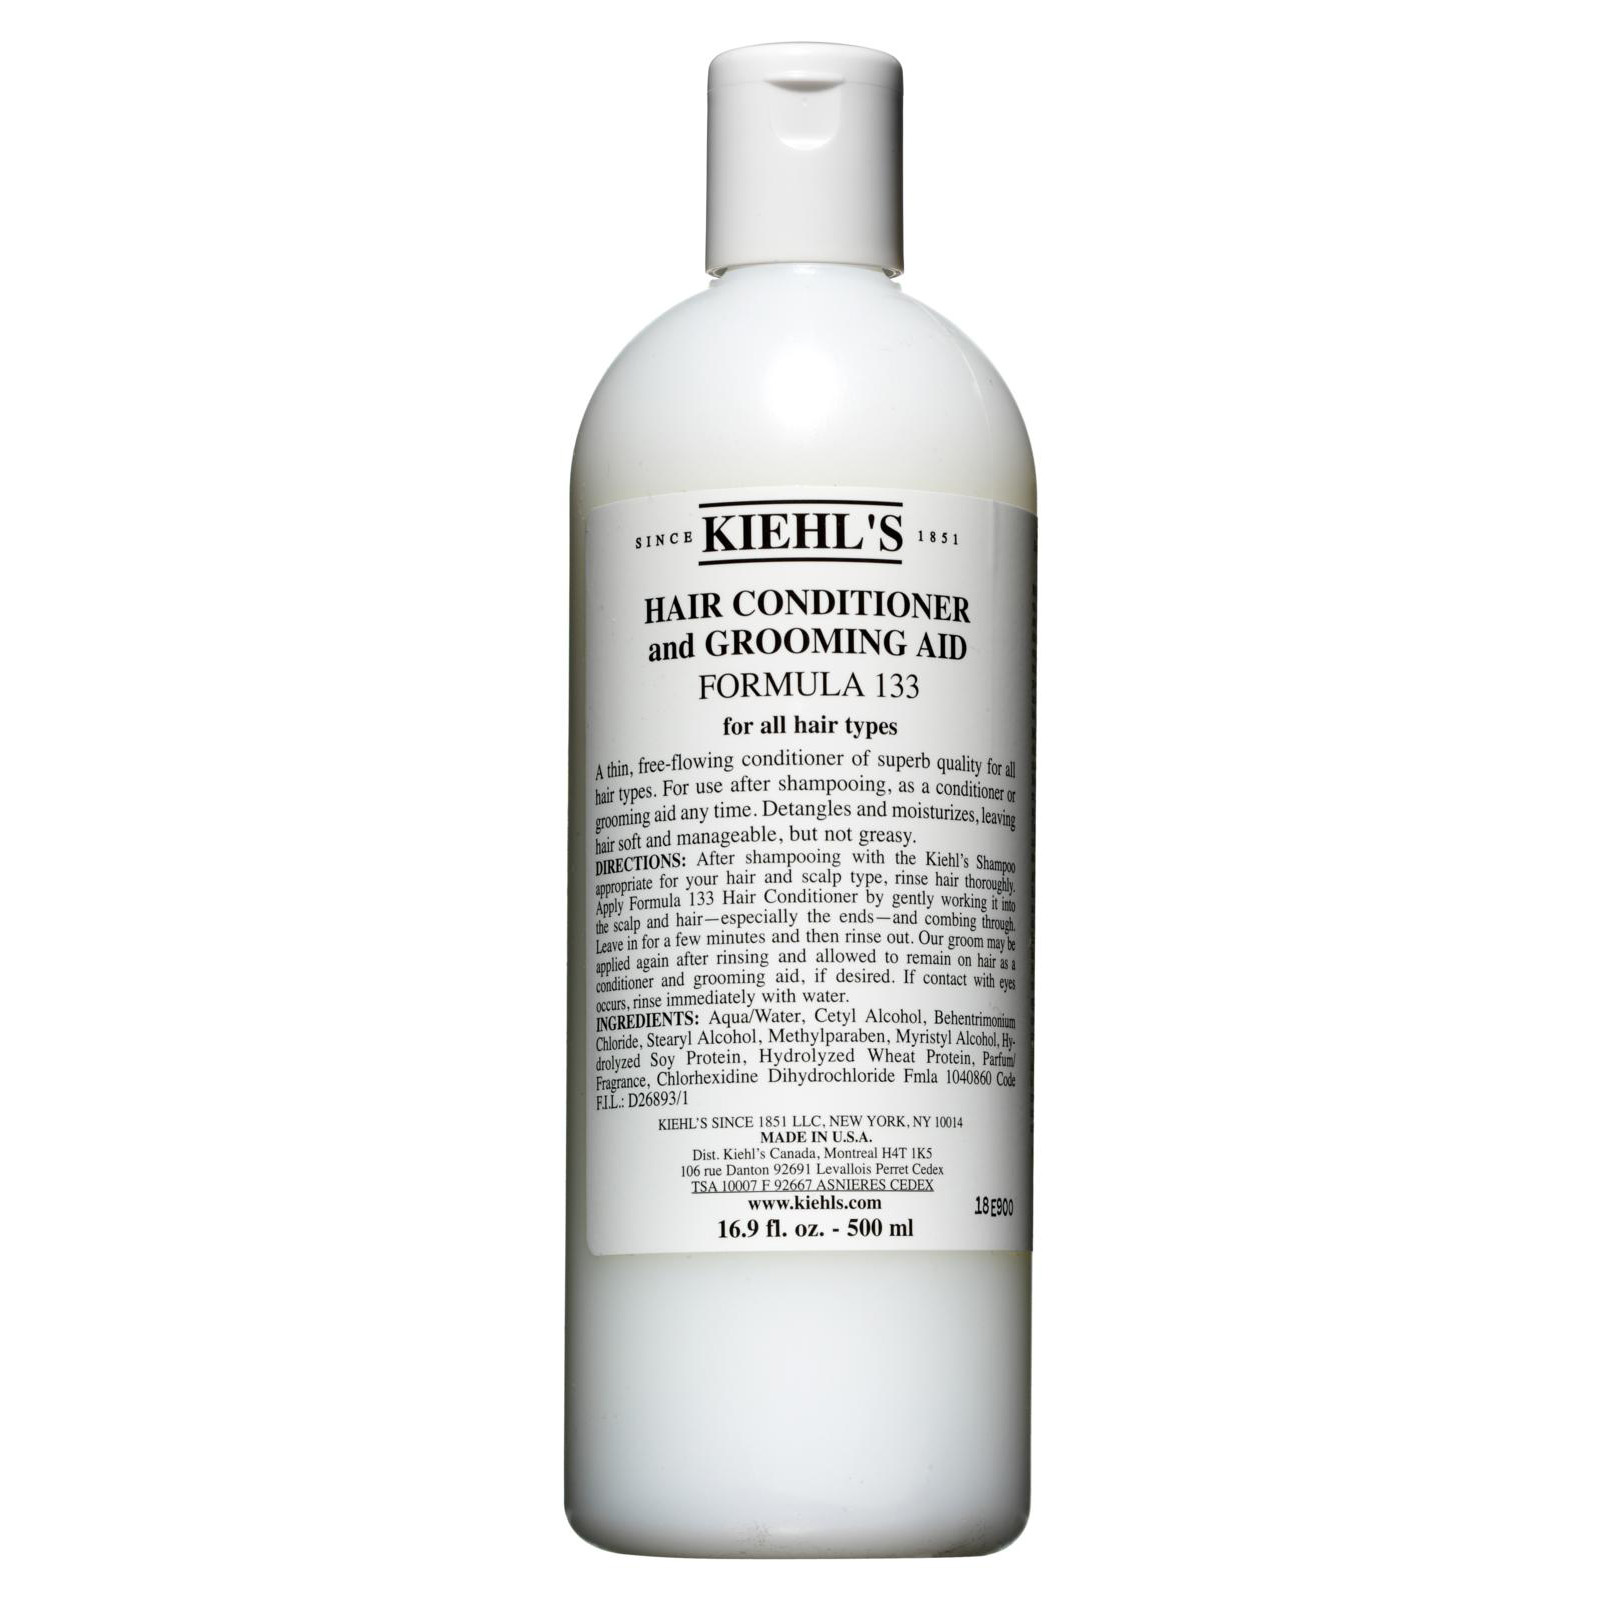 KIEHLS CONDITIONER AND GROOMING AID FORMULA